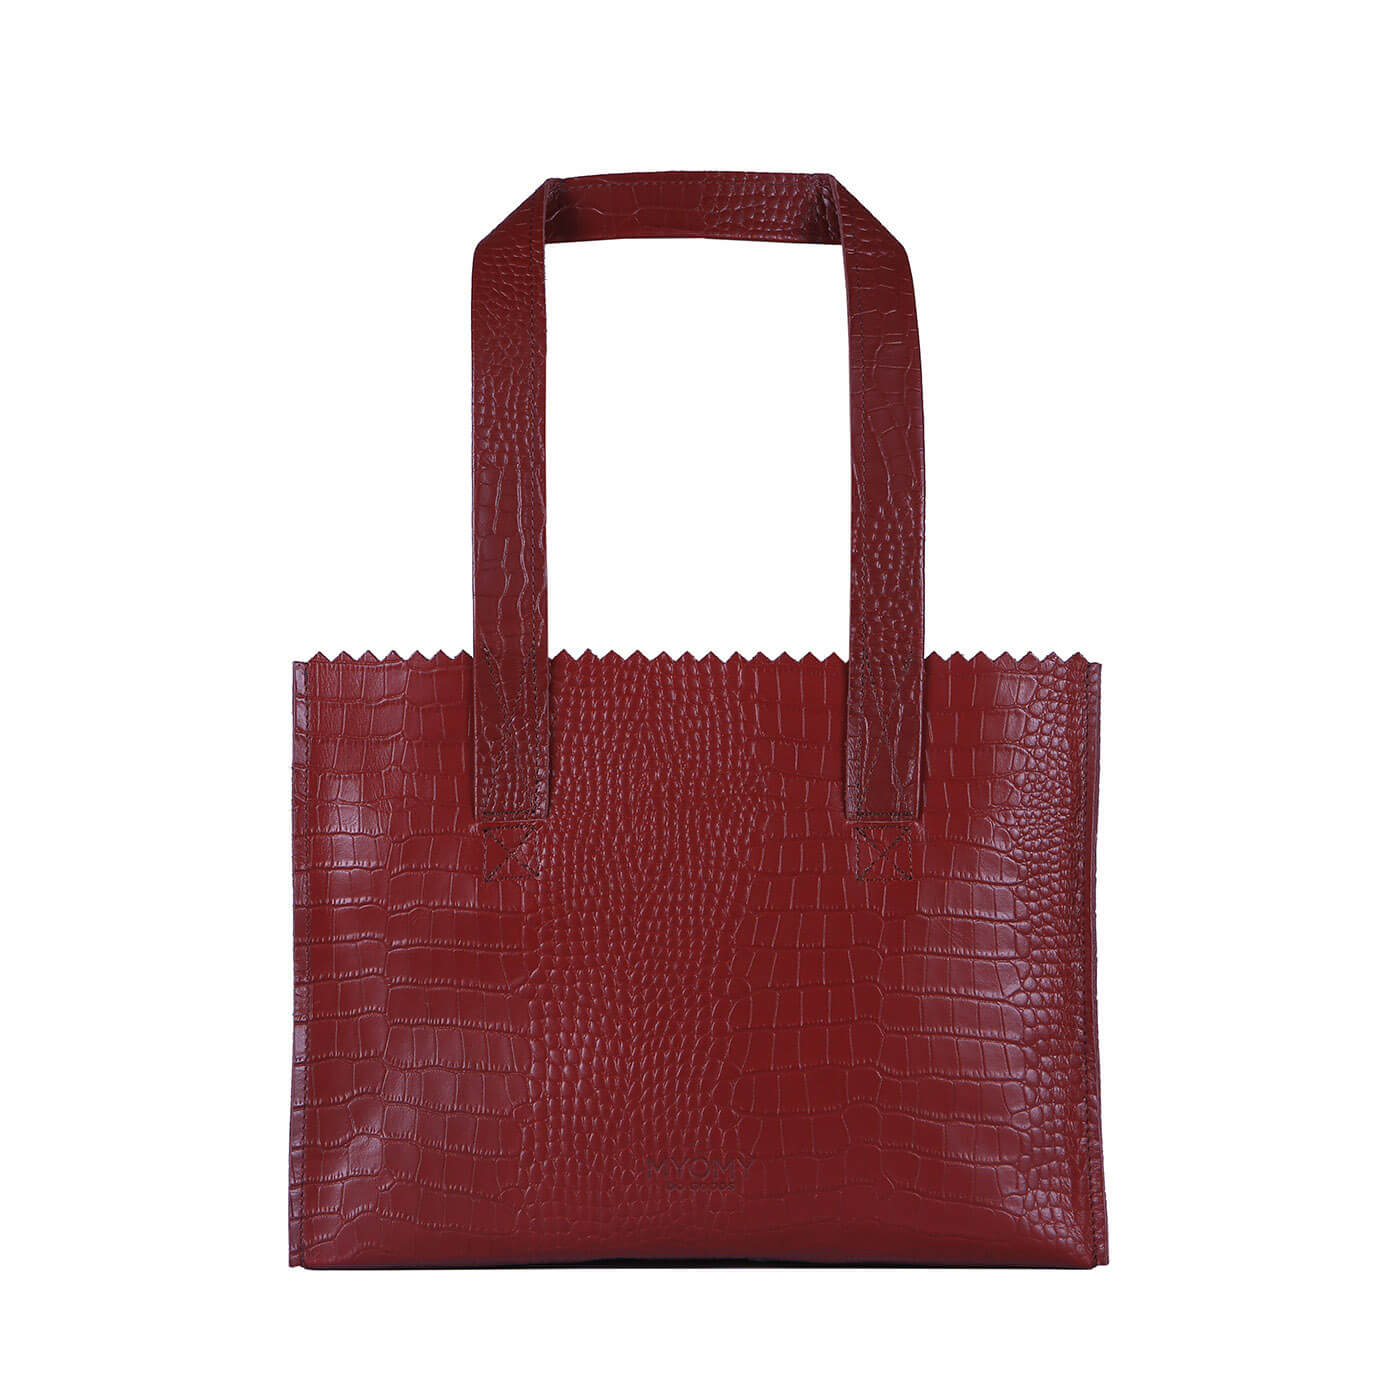 MY PAPER BAG Handbag - croco burgundy